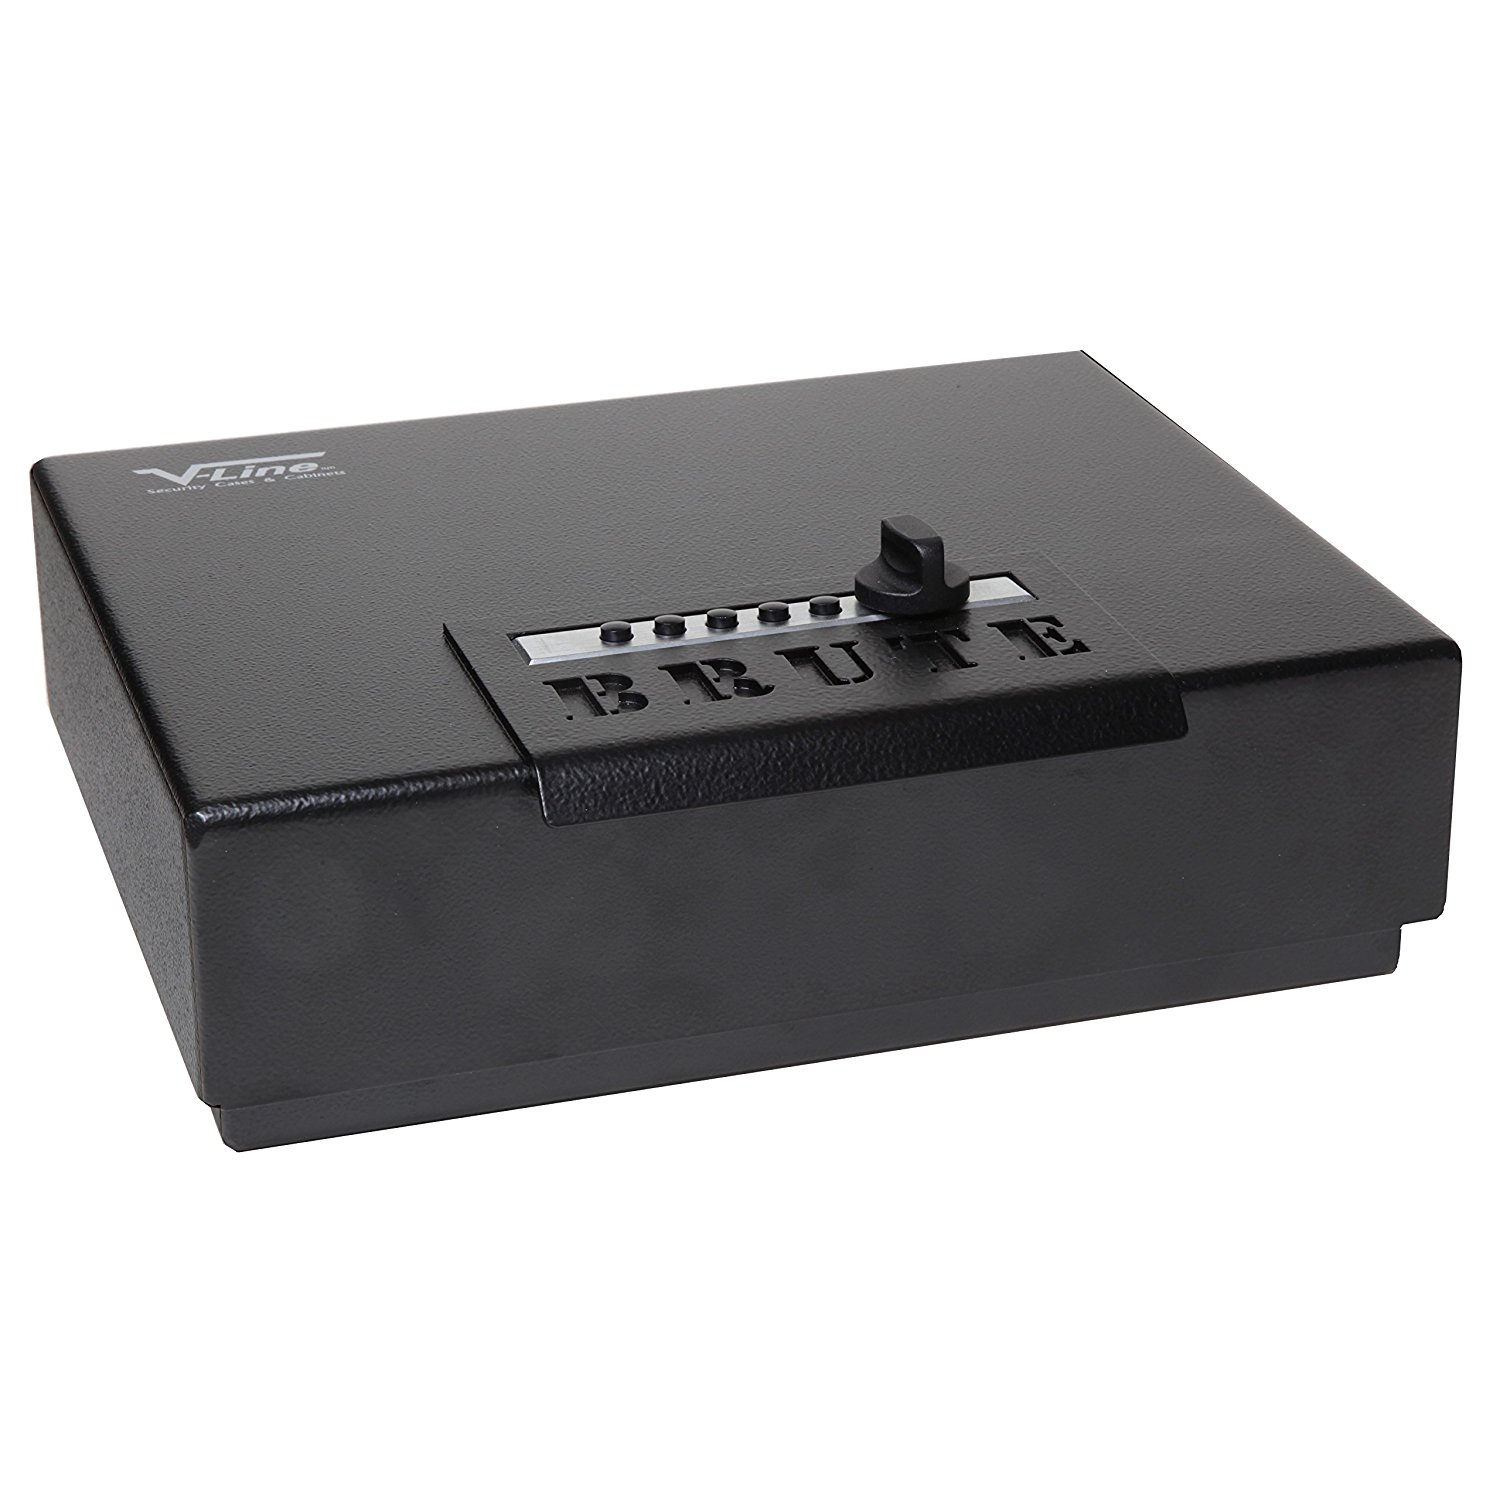 the V-Line Brute Heavy Duty Safe with Quick Access Lock, Black shown here is another top combination lock gun safe